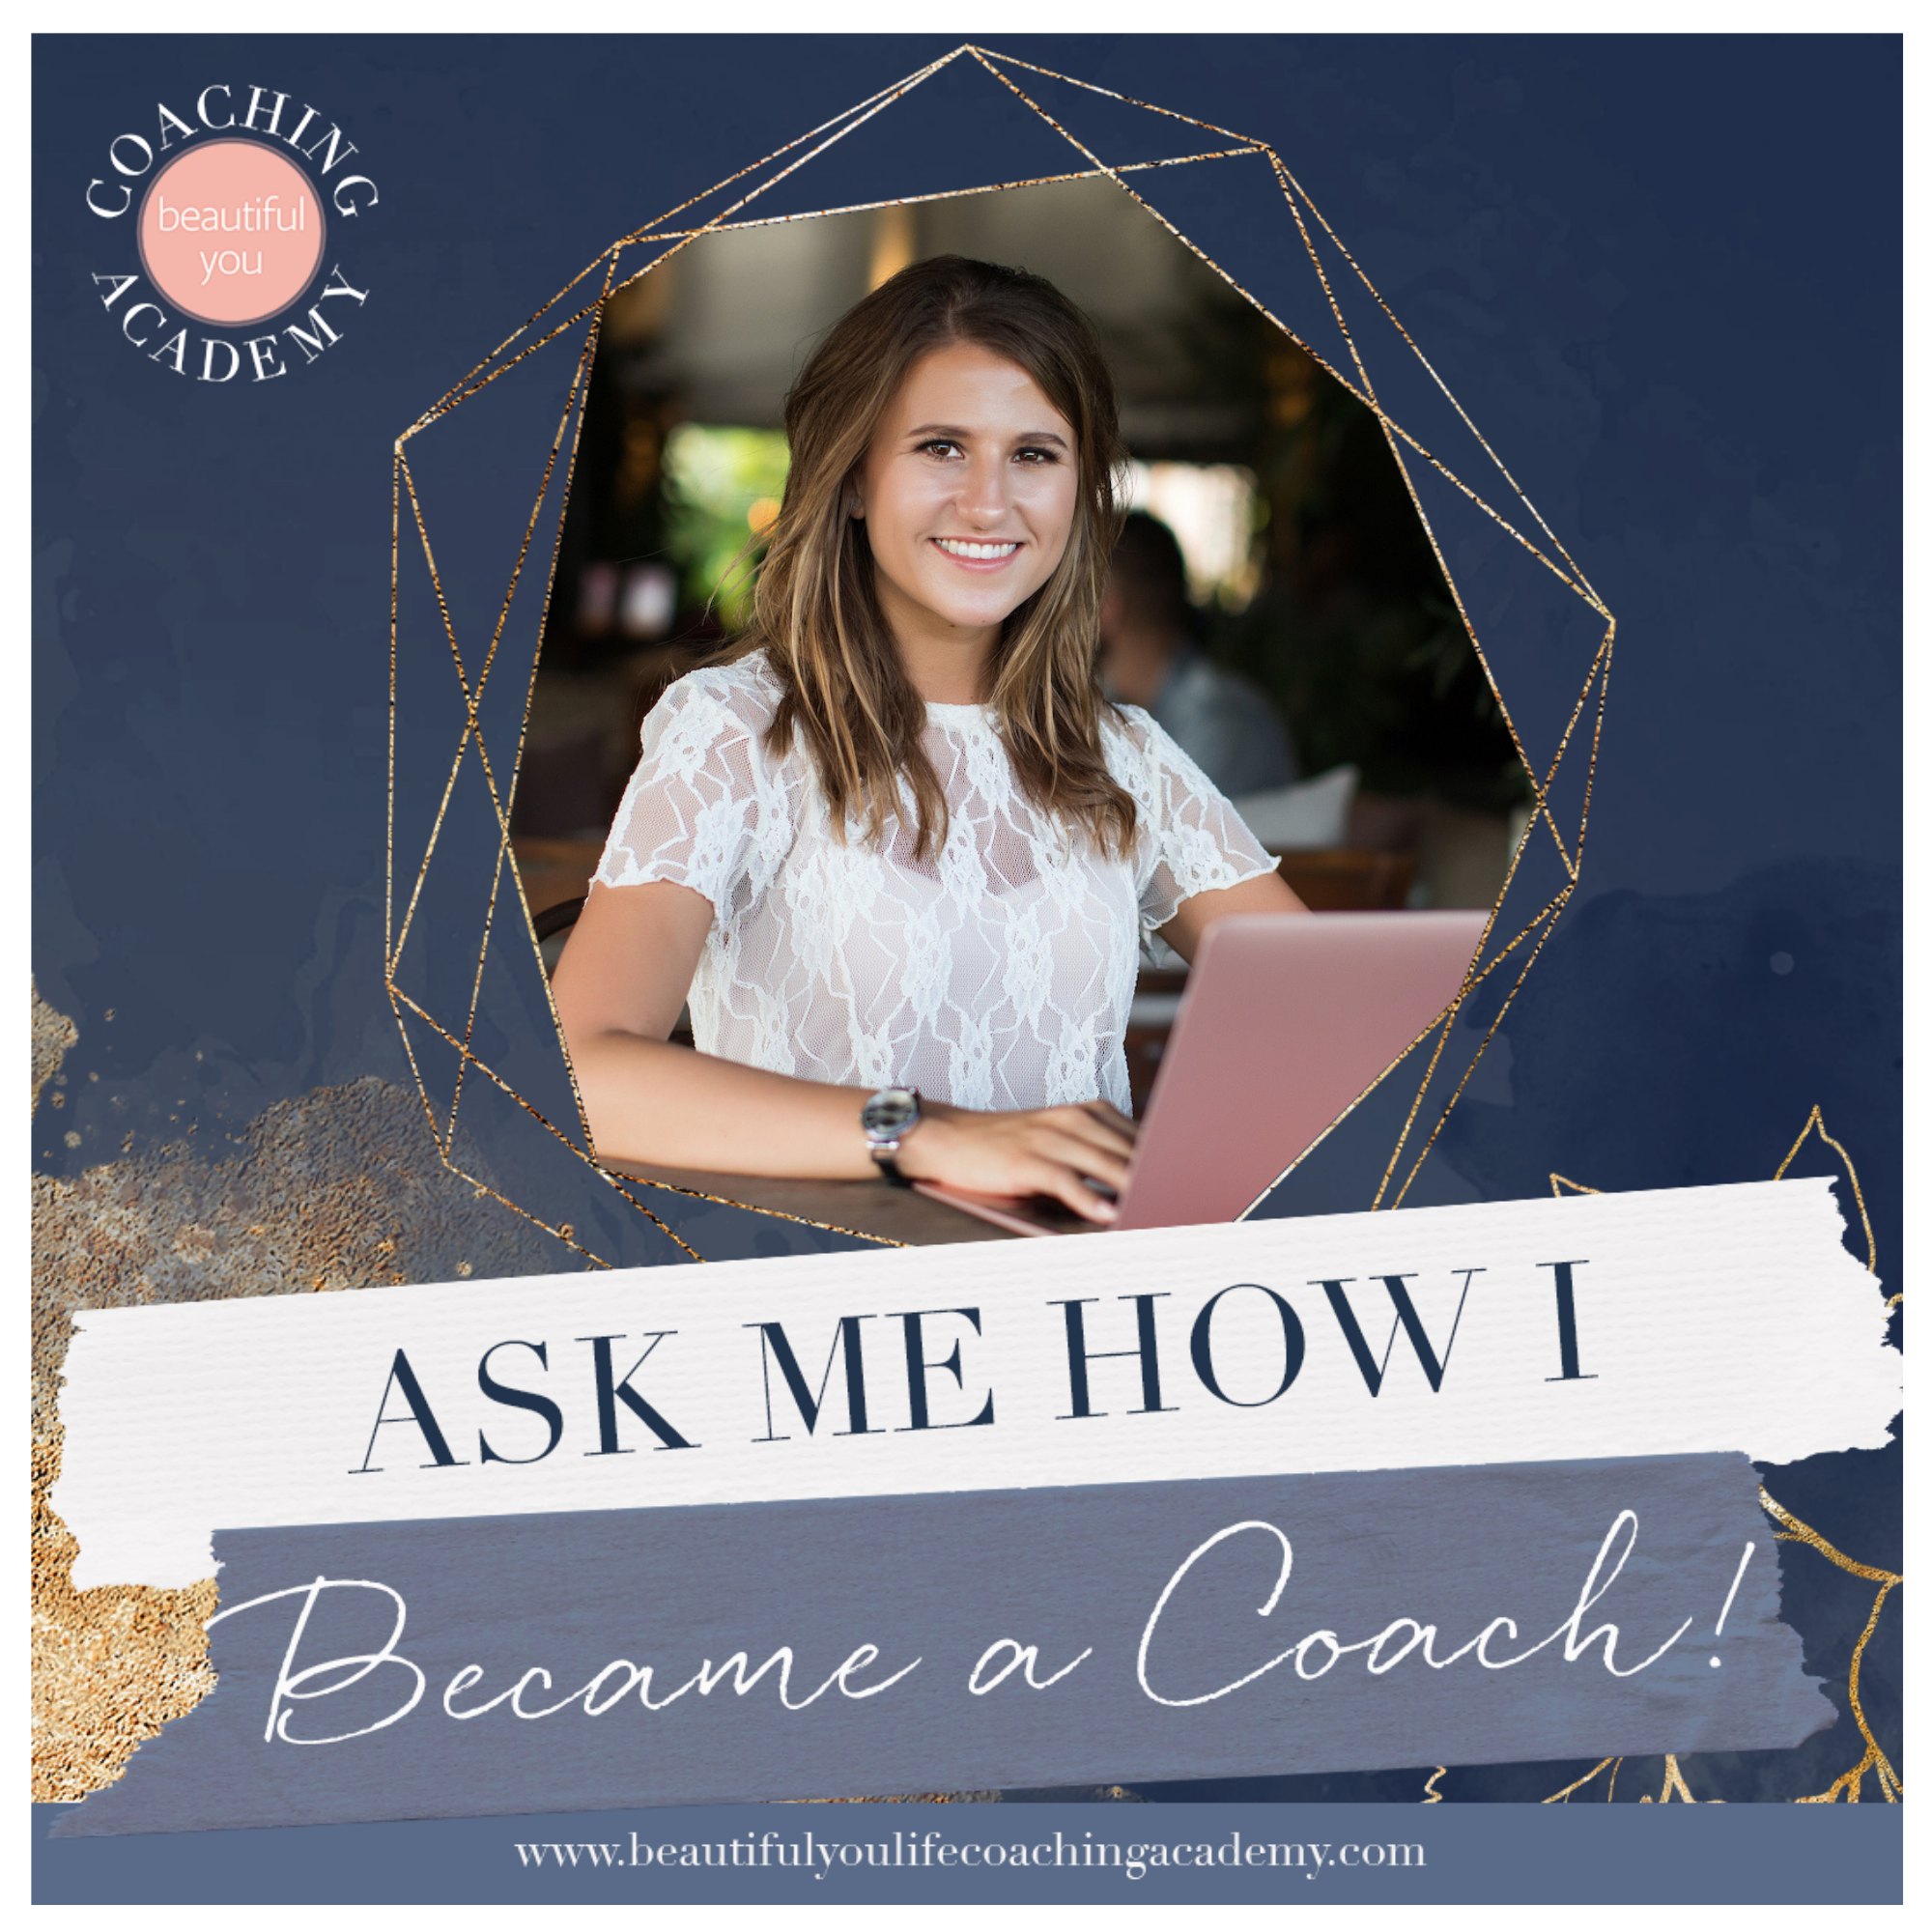 LIFE COACH COURSE REVIEW